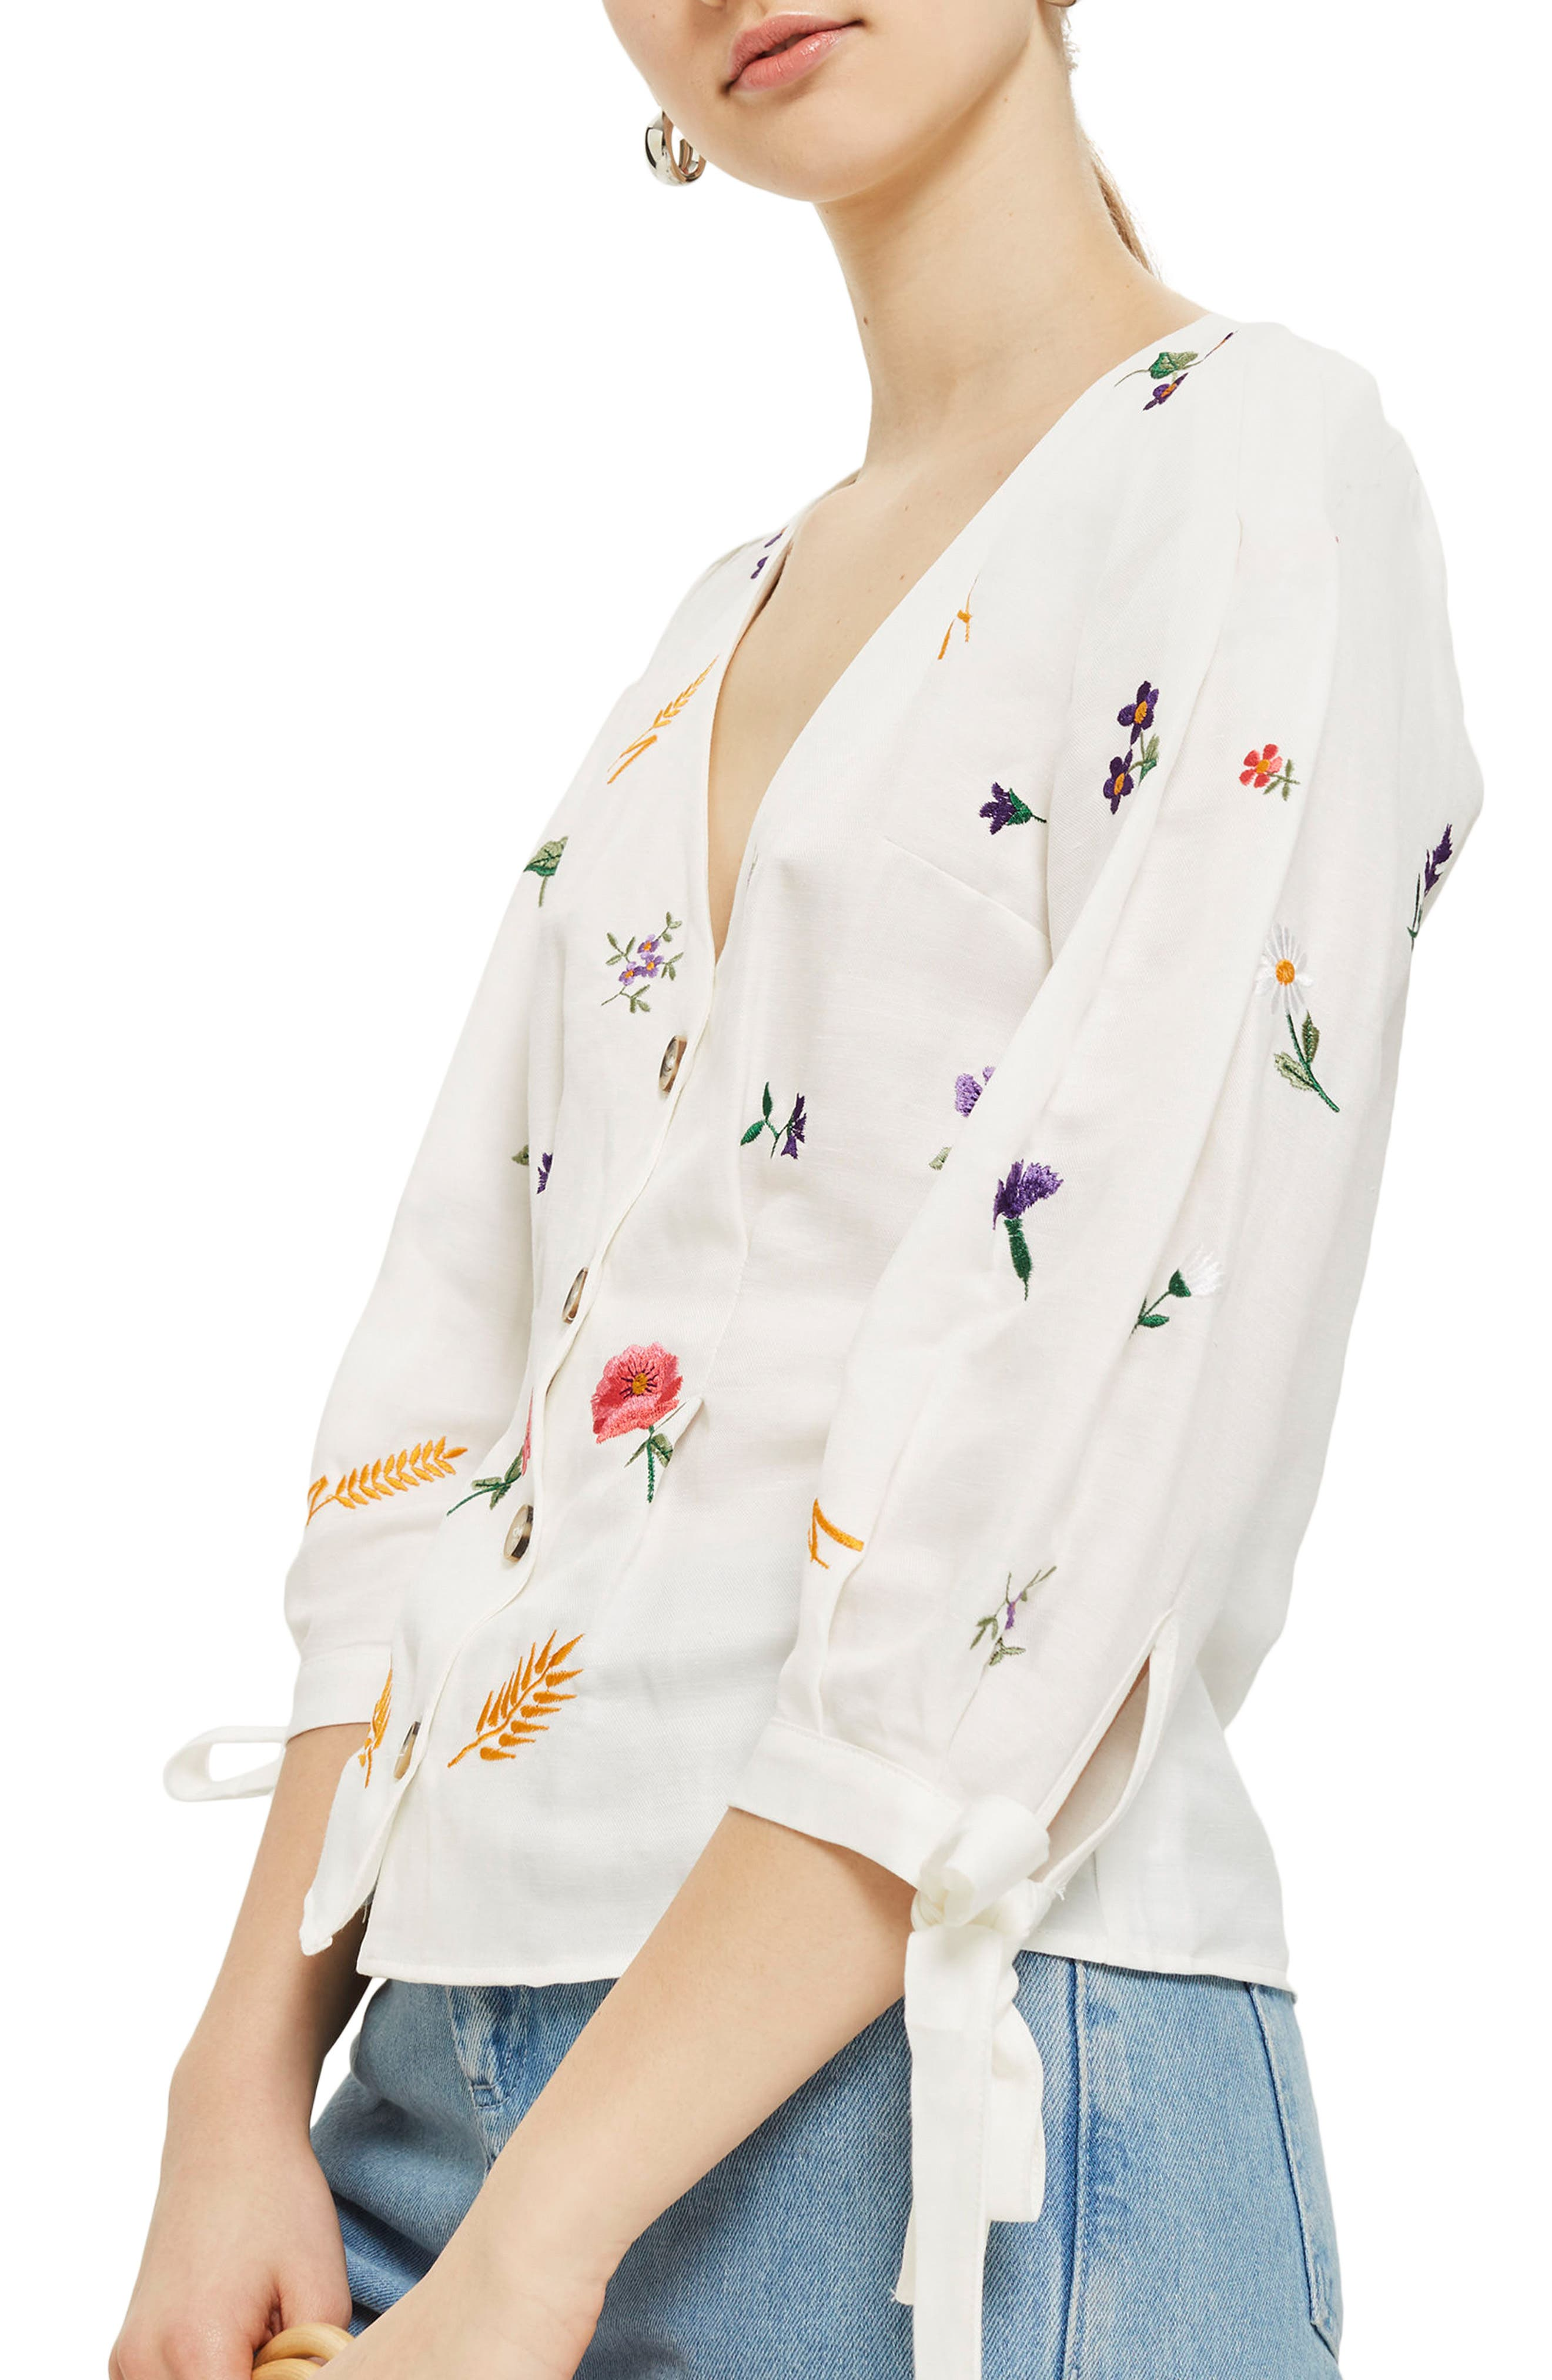 Field Embroidered Floral Blouse,                             Main thumbnail 1, color,                             Ivory